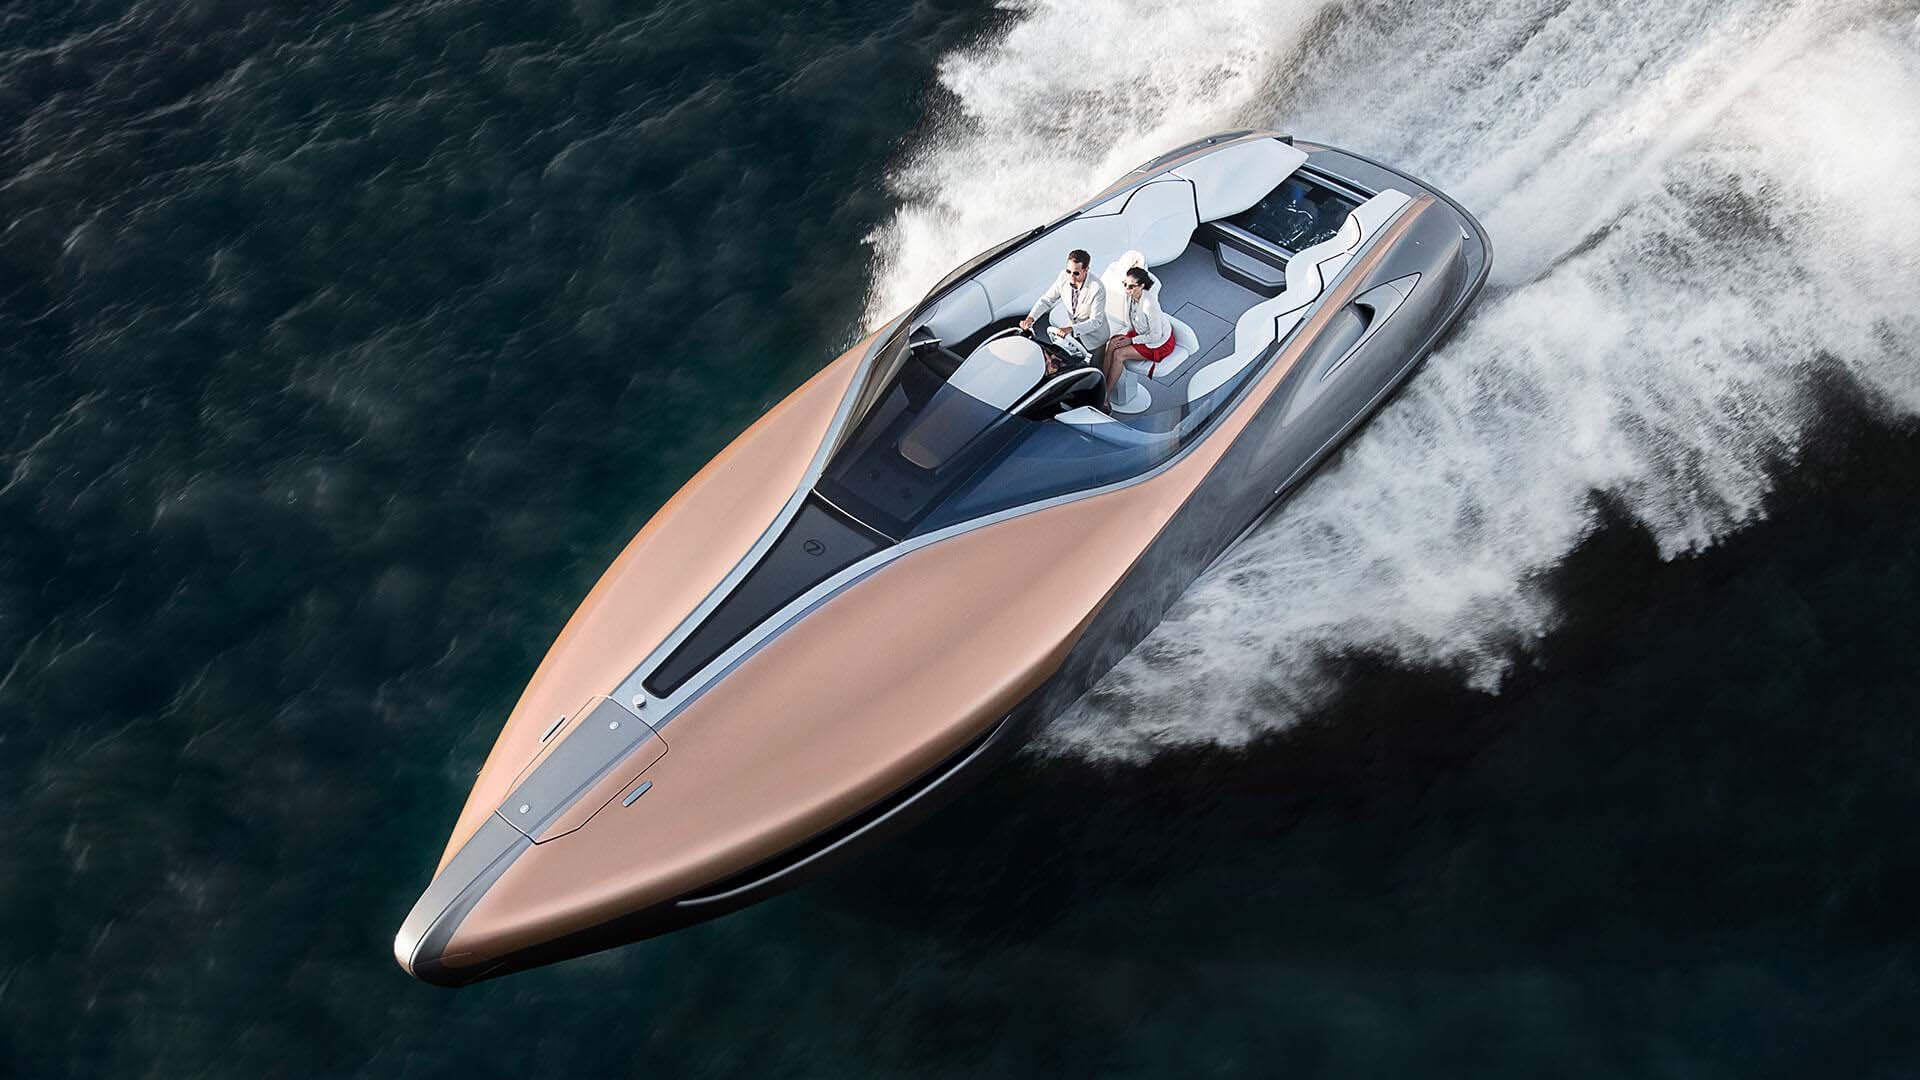 Lexus Reveals Sports Yacht Concept | Lexus UK